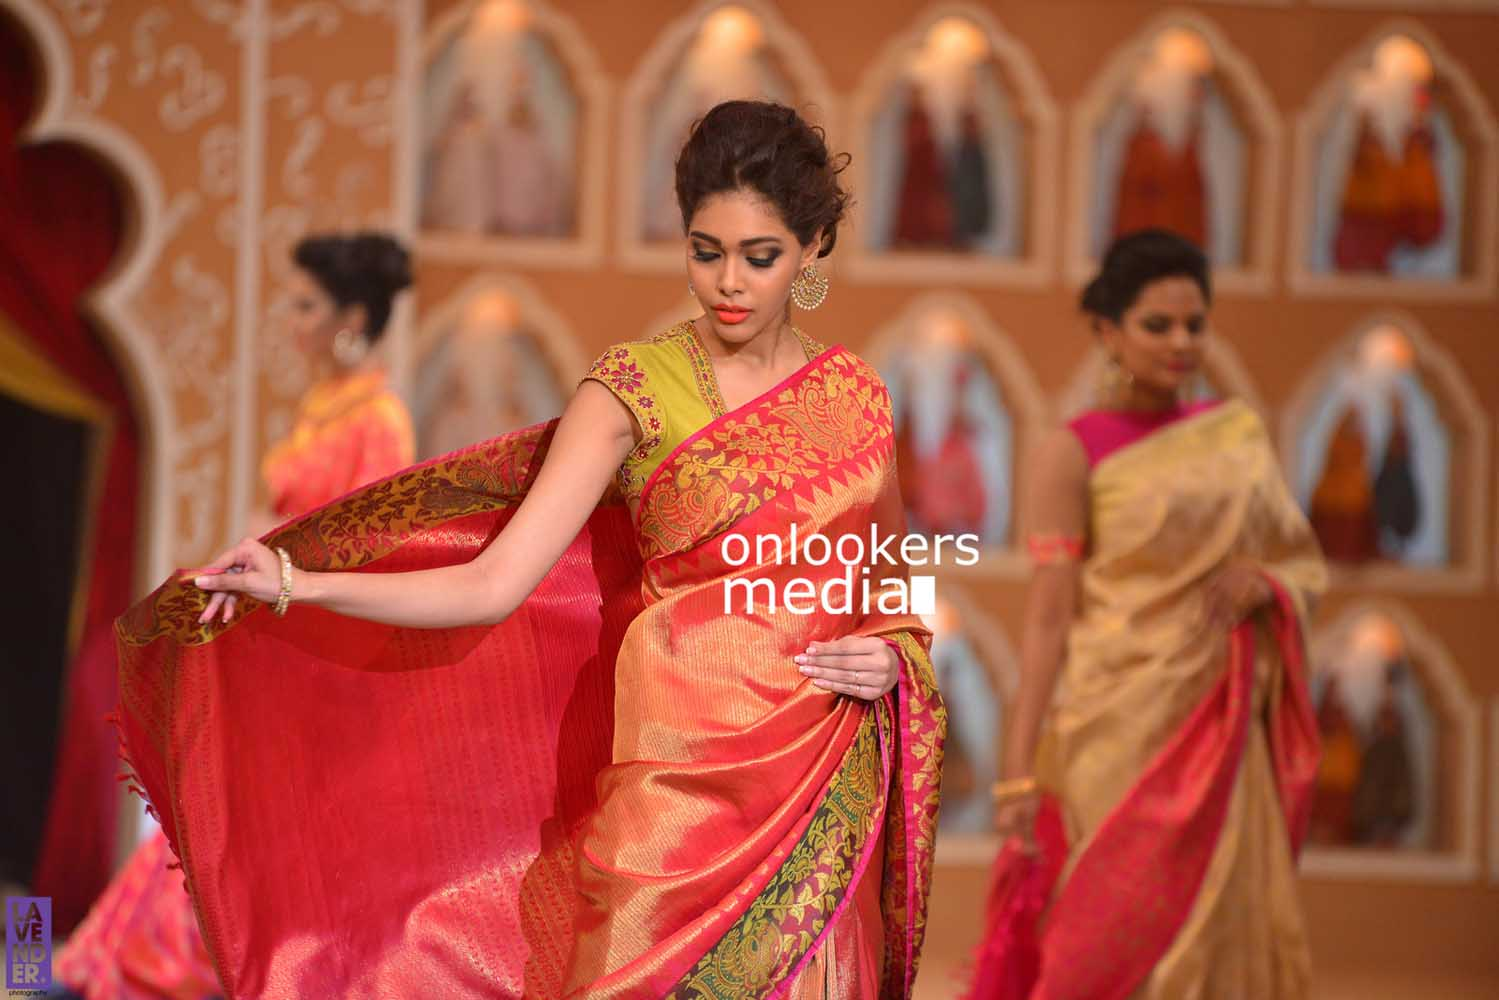 http://onlookersmedia.in/wp-content/uploads/2016/10/Beena-Kannan-Bridal-Show-2016-Stills-Photos-Seematti-203.jpg